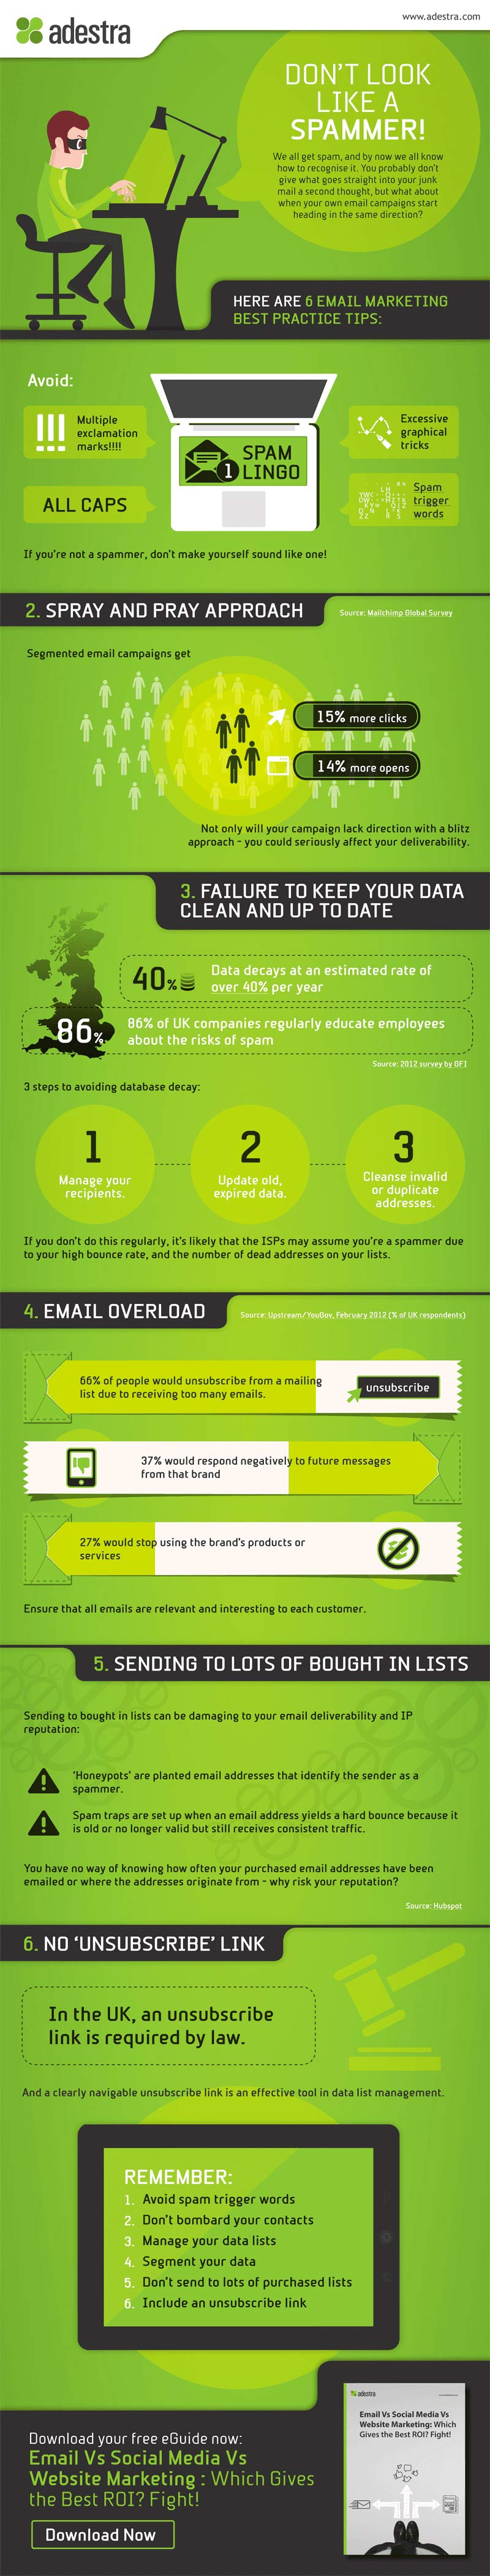 6 errori da non commettere mai nell'email marketing